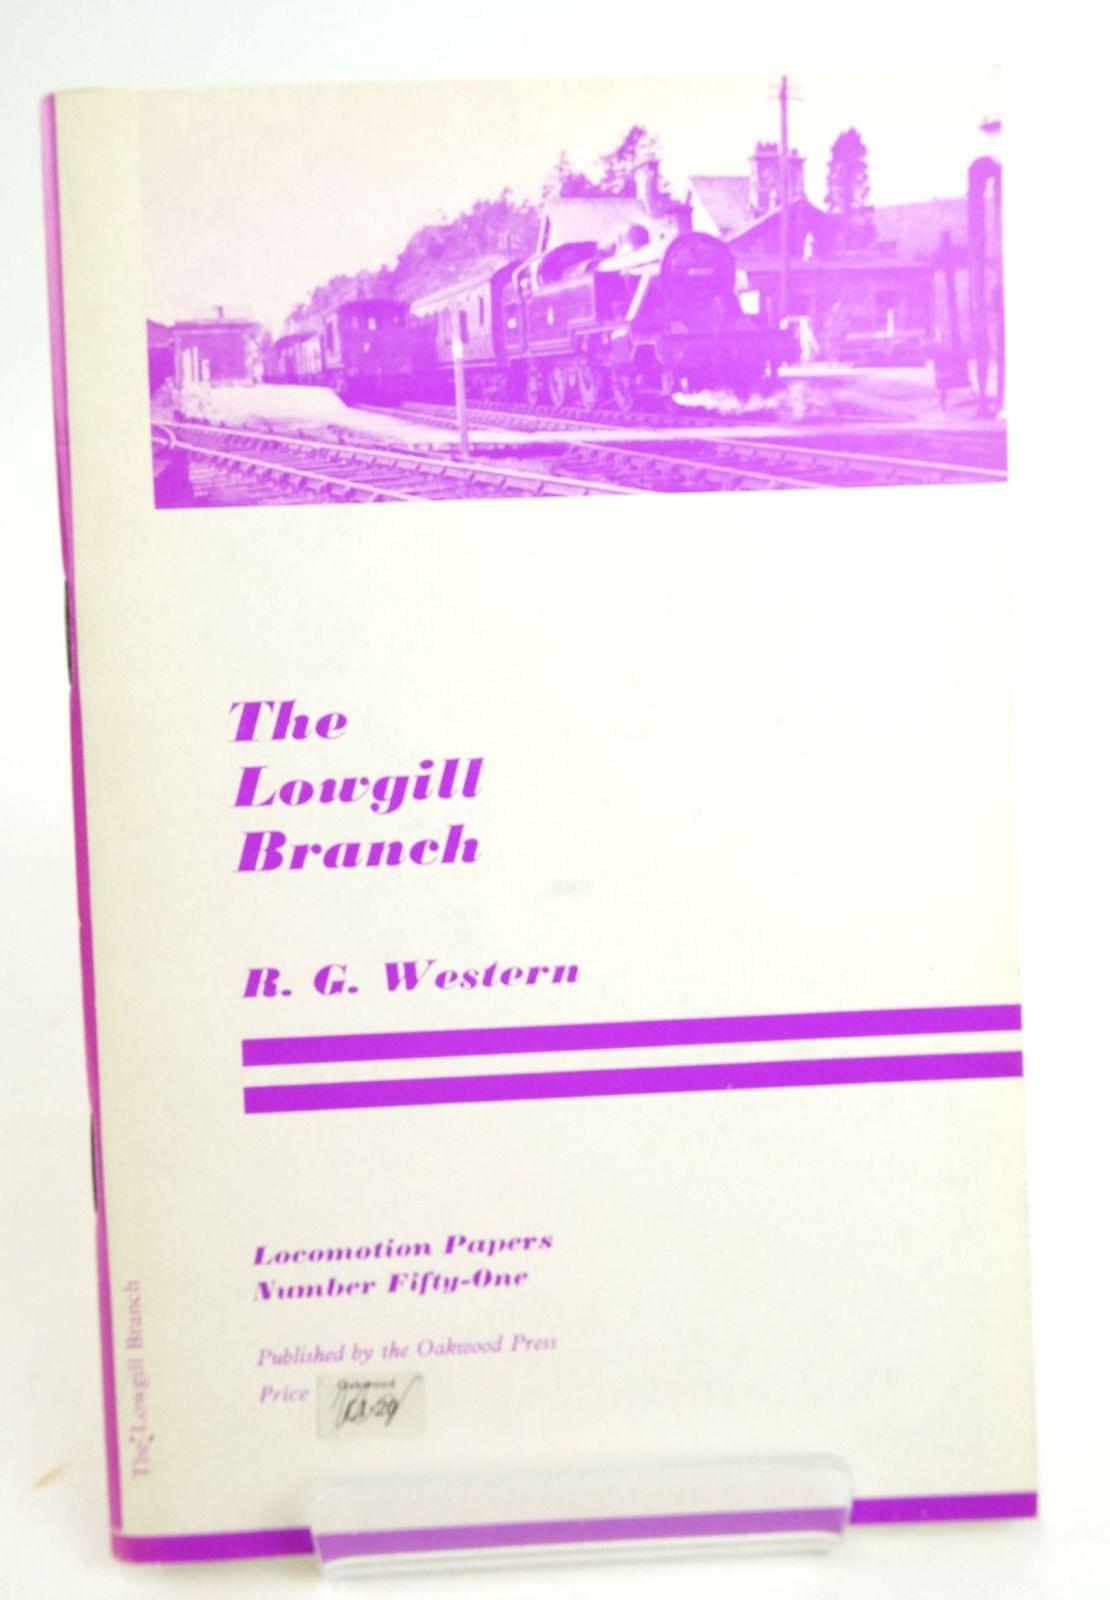 Photo of THE LOWGILL BRANCH: A LOST ROUTE TO SCOTLAND (LOCMOTION PAPERS 51) written by Western, R.G. published by The Oakwood Press (STOCK CODE: 1819967)  for sale by Stella & Rose's Books